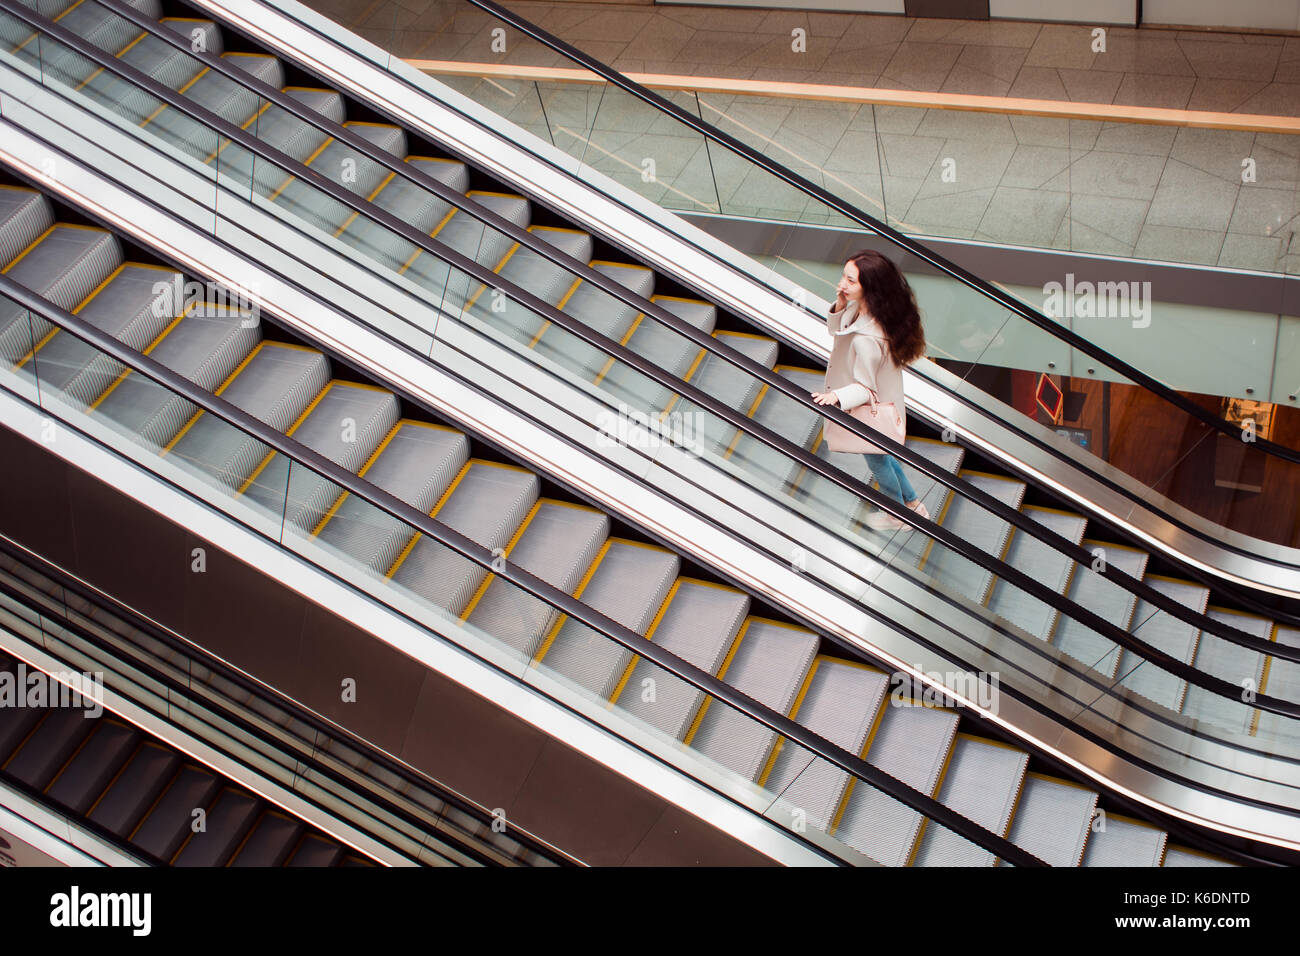 Young woman at the Mall rise up by escalator, view from the top - Stock Image